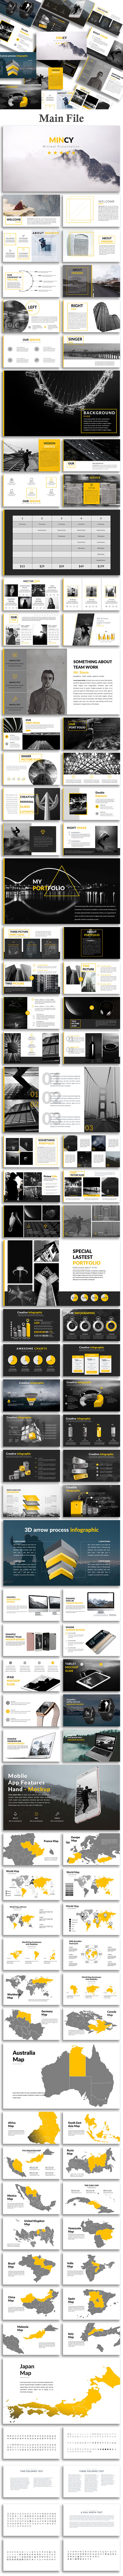 Mincy - Creative PowerPoint Template - Creative PowerPoint Templates